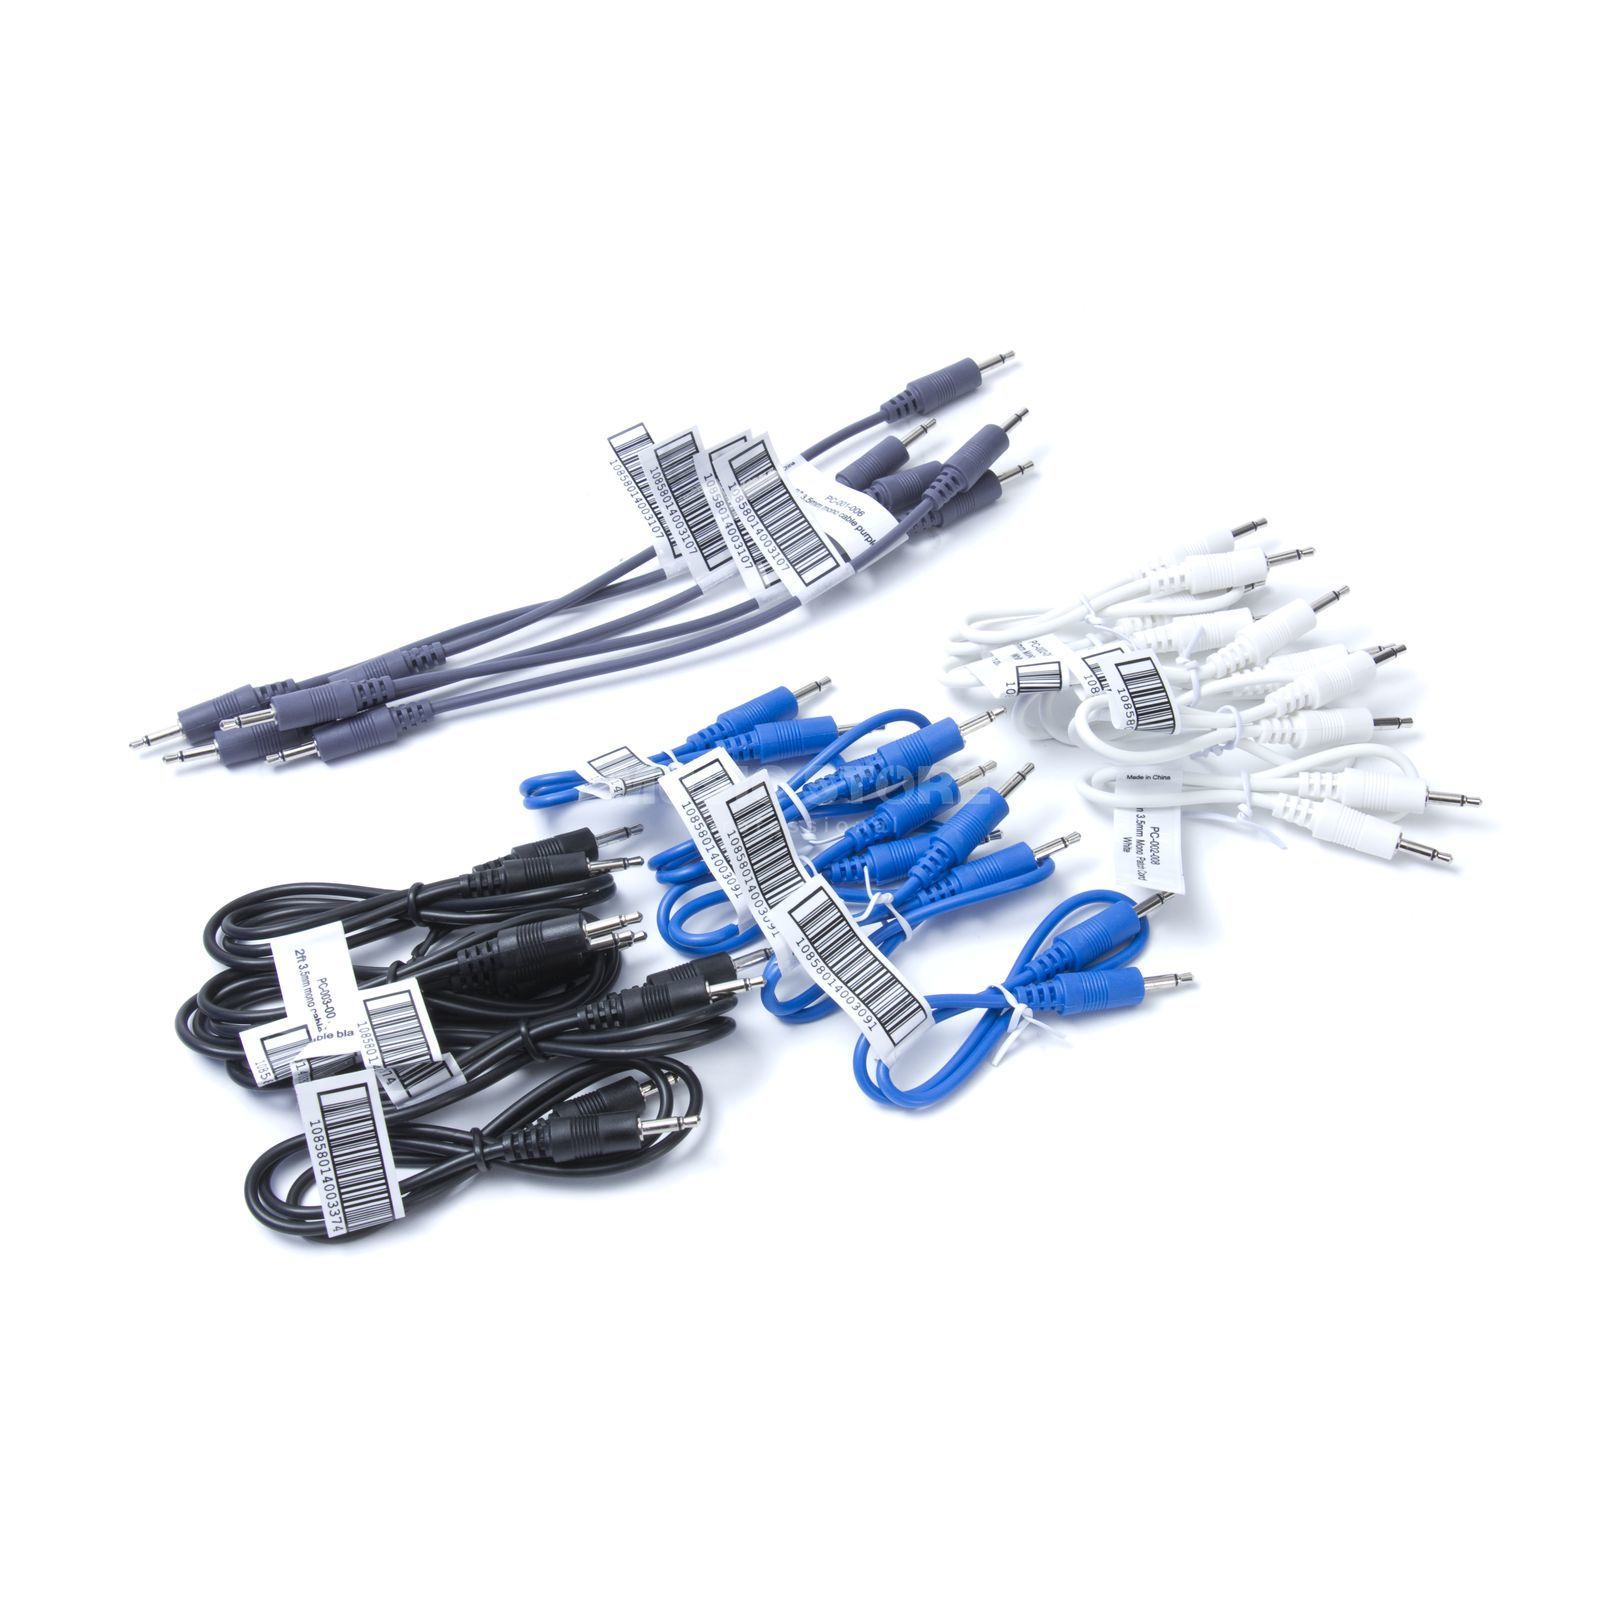 Make Noise 20 Patchkabel Pack grau, weiss,schwarz, blau Product Image